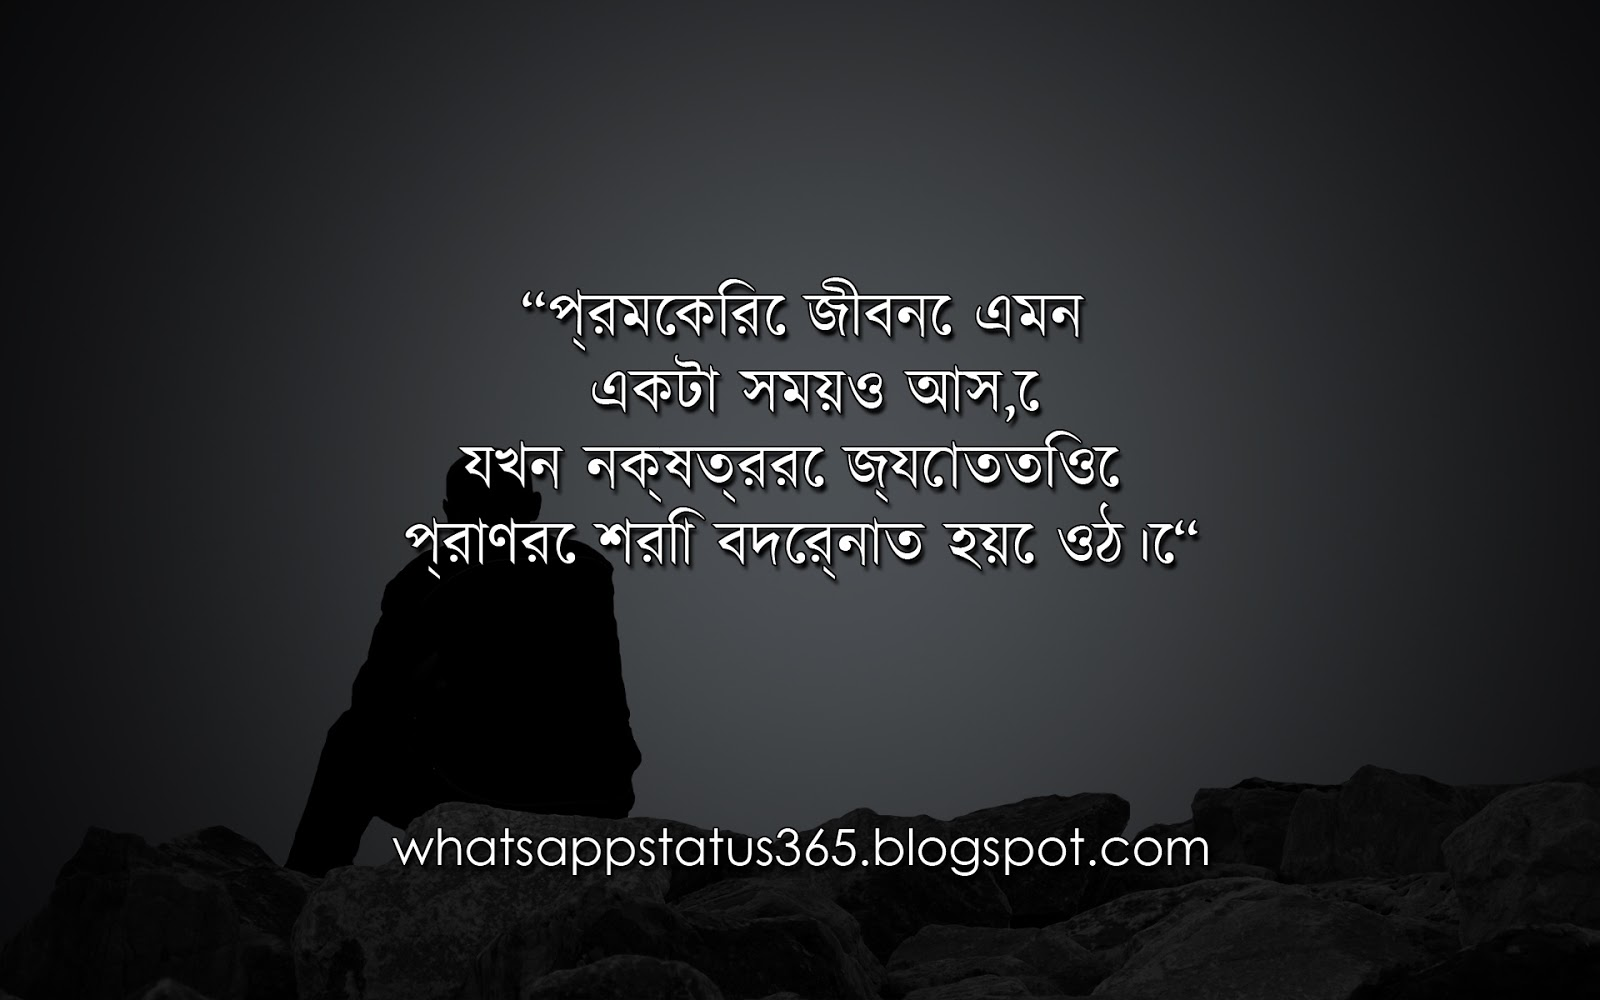 Whatsapp Status 365 - blogger Bangla Language Status Messages and Quotes For Girl and Boy